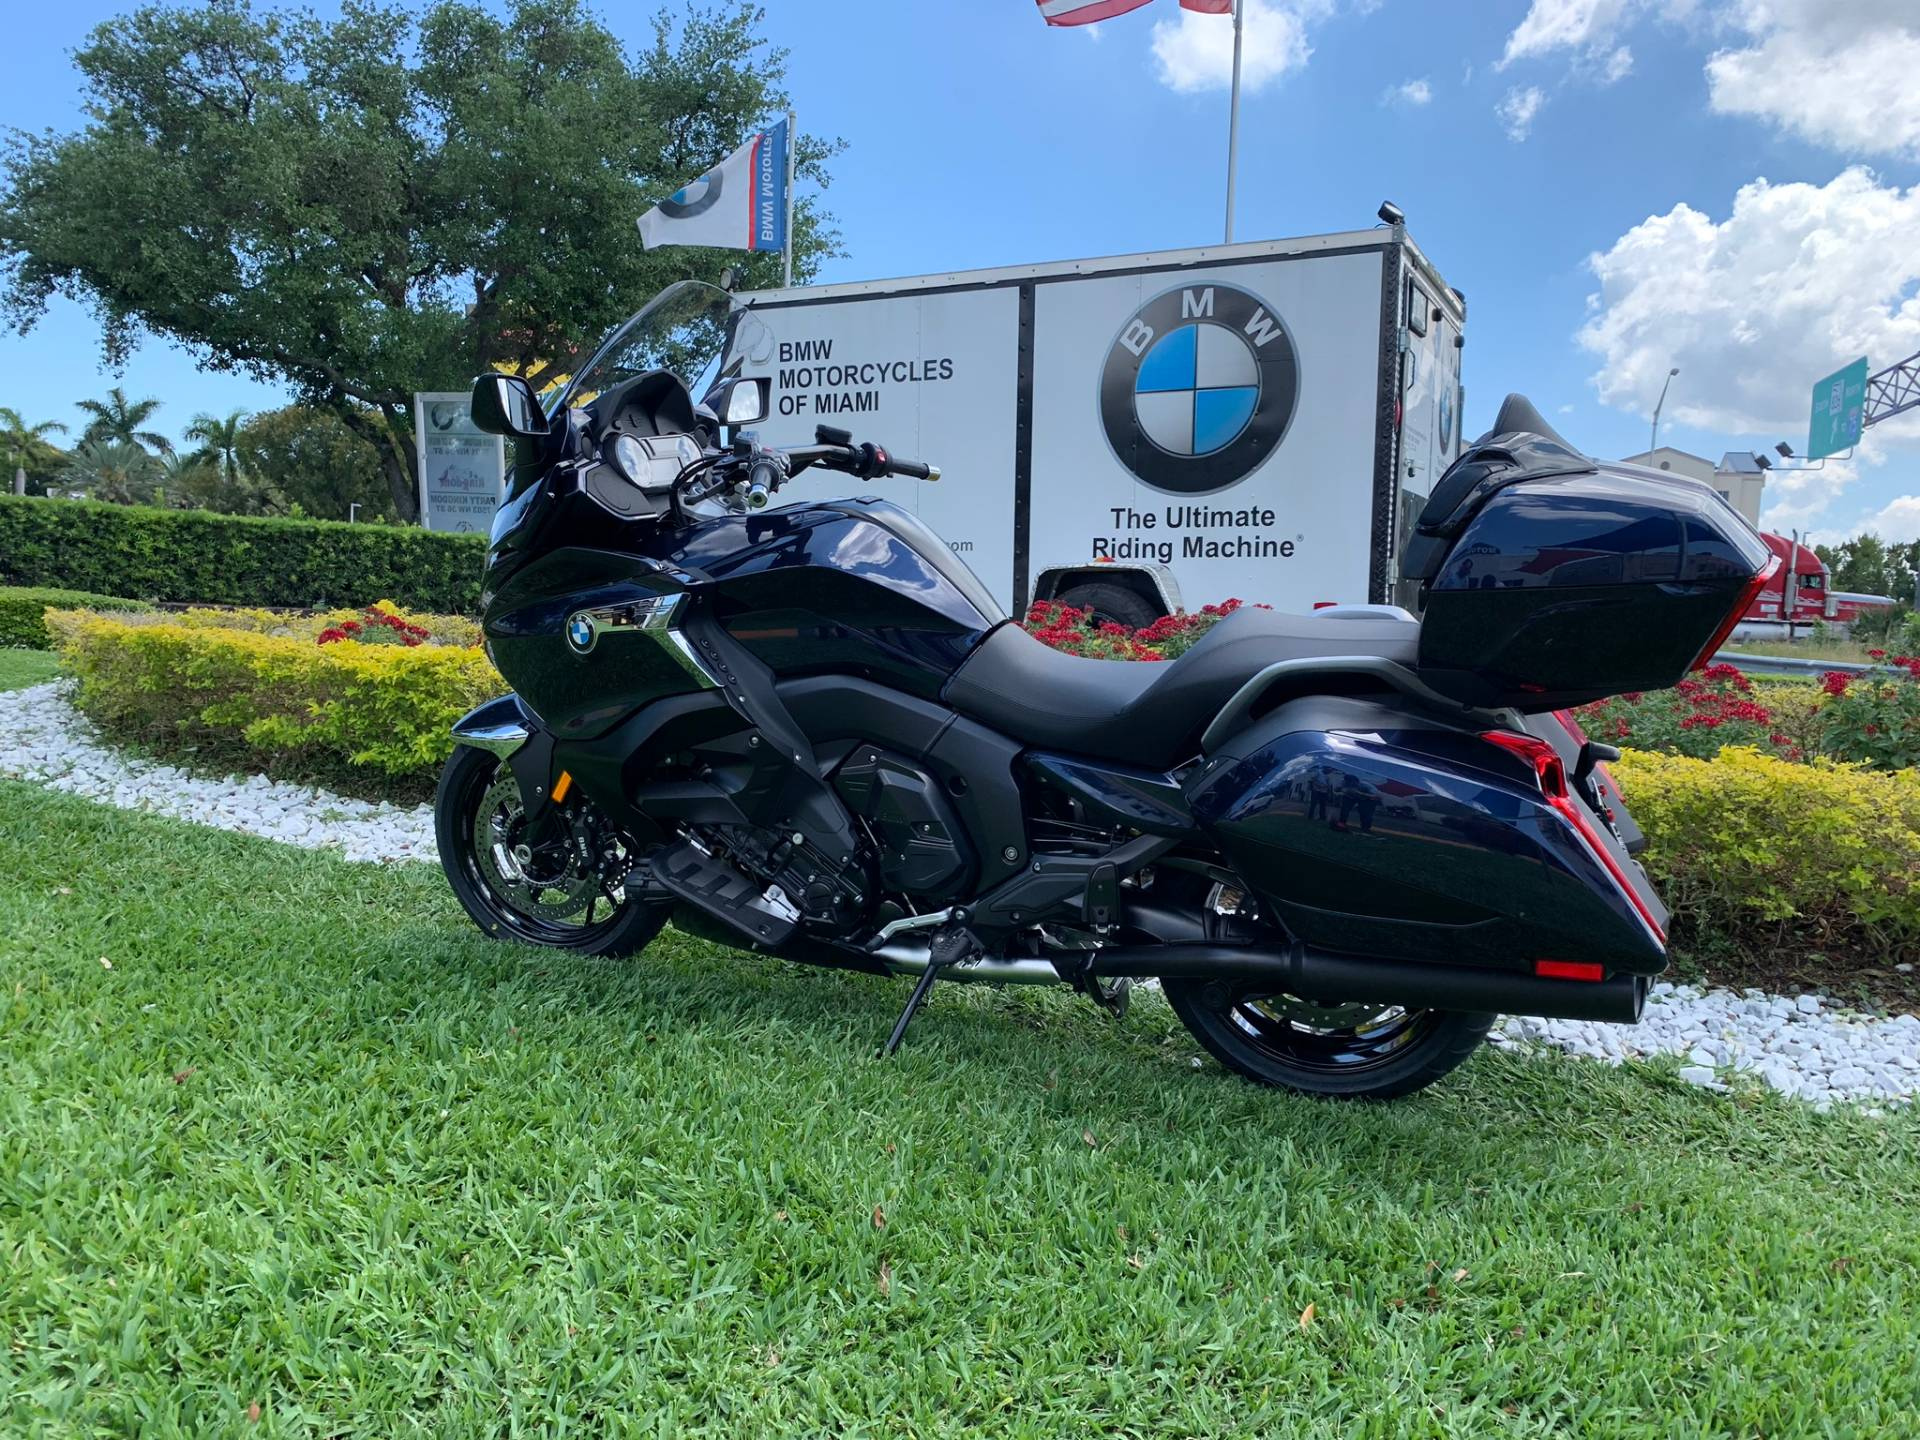 New 2019 BMW K 1600 B for sale, BMW K 1600B for sale, BMW Motorcycle K1600B, new BMW Bagger, Gran America. BMW Motorcycles of Miami, Motorcycles of Miami, Motorcycles Miami - Photo 6